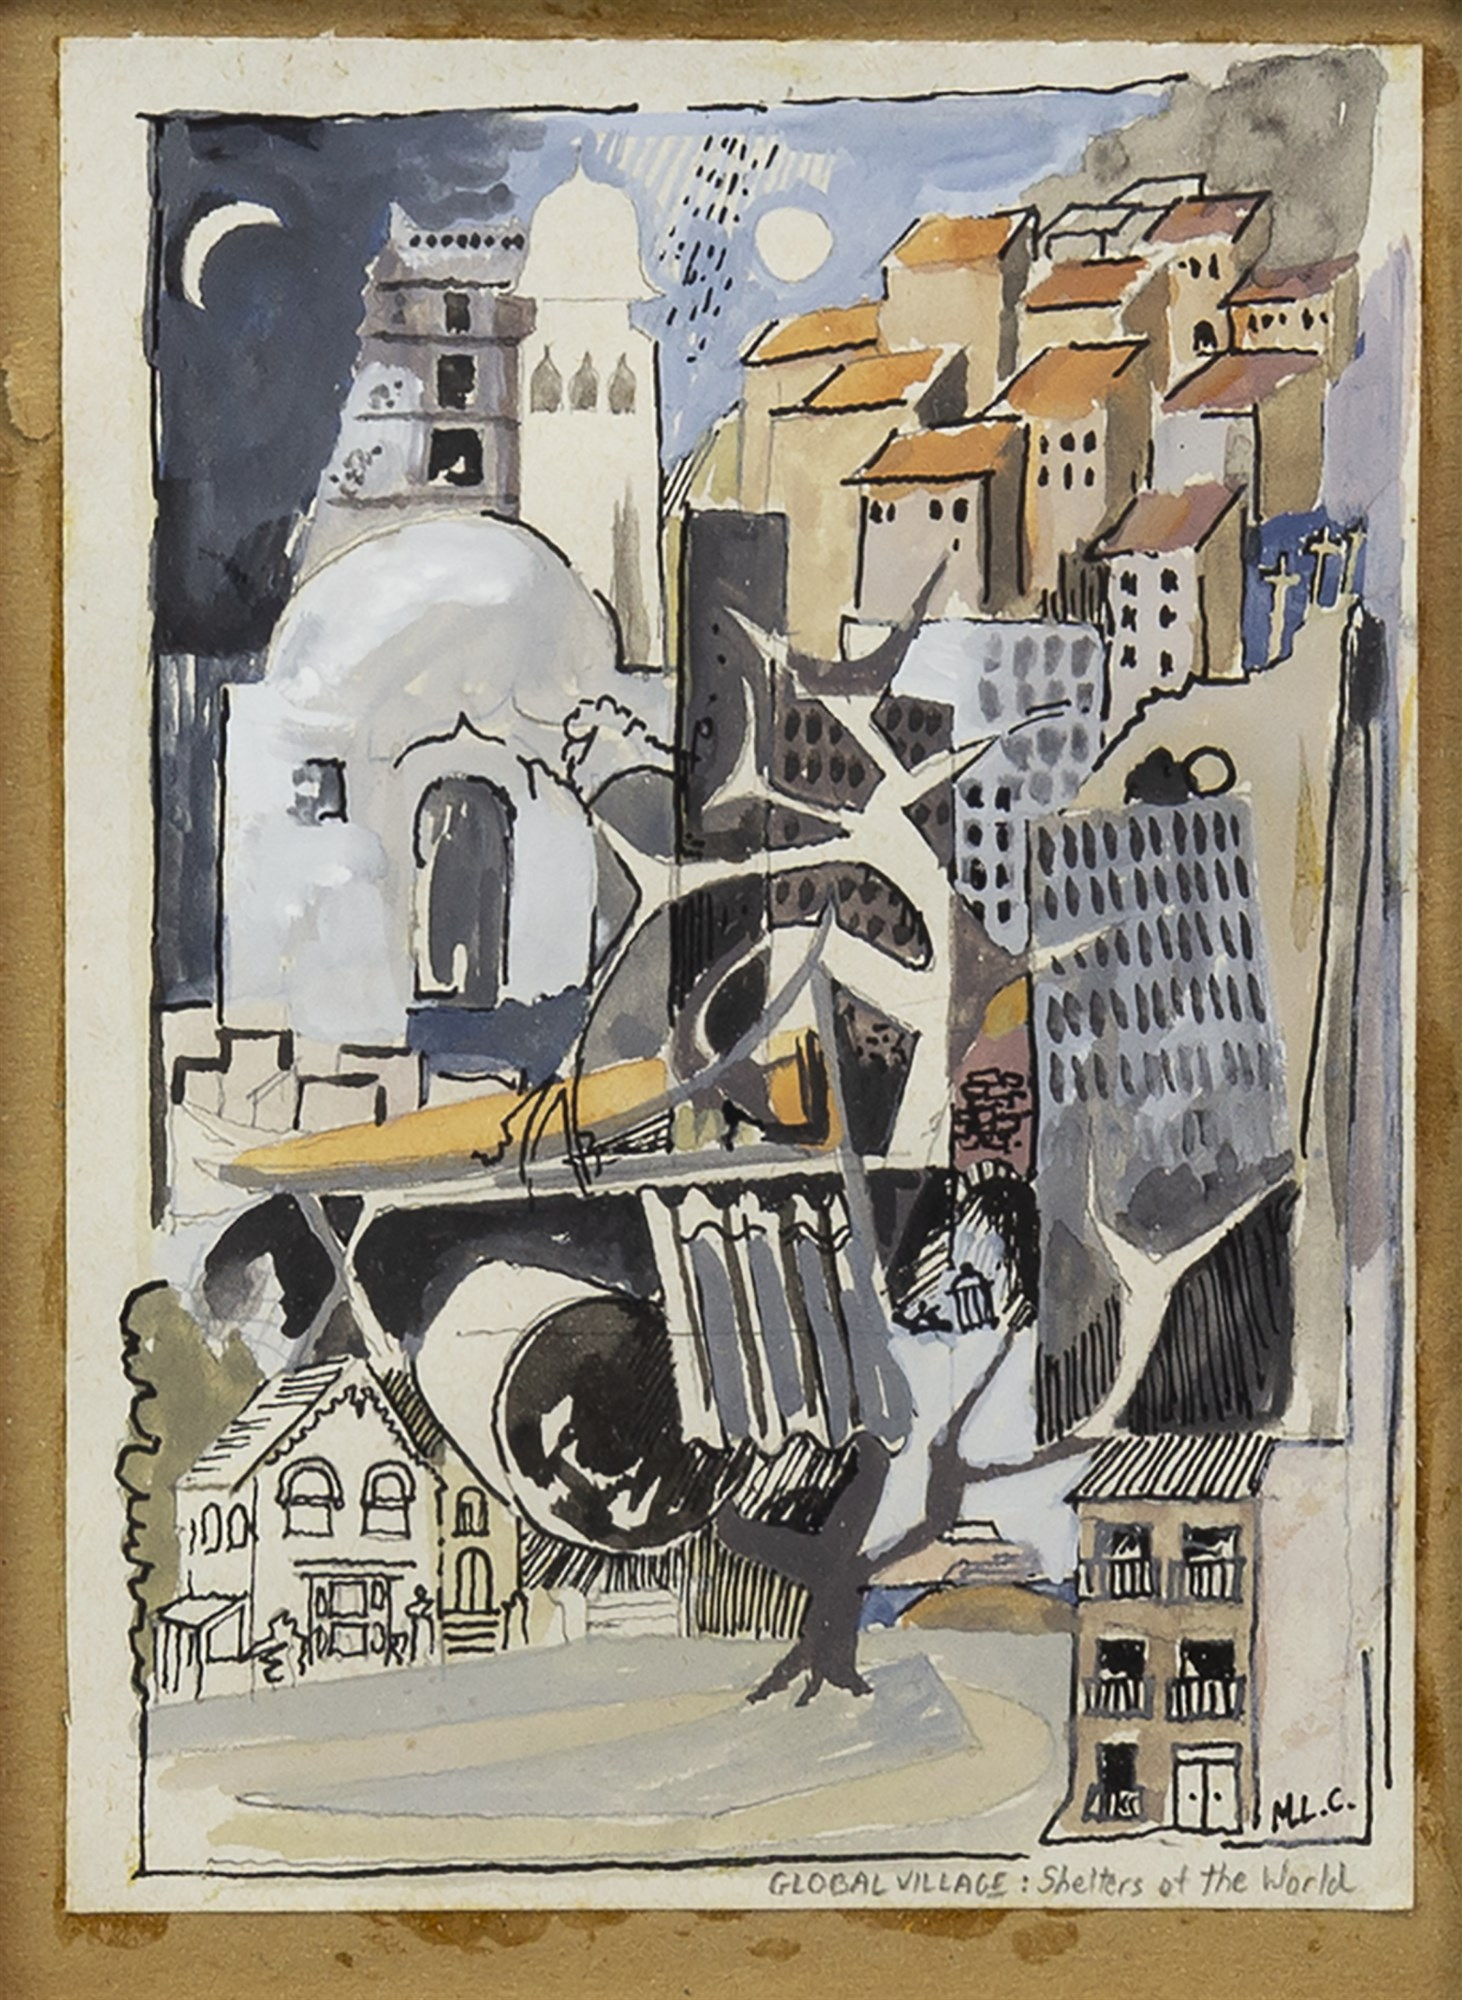 Lot 93 - GLOBAL VILLAGE: SHELTERS OF THE WORLD, A MIXED MEDIA BY MARK CHEVERTON